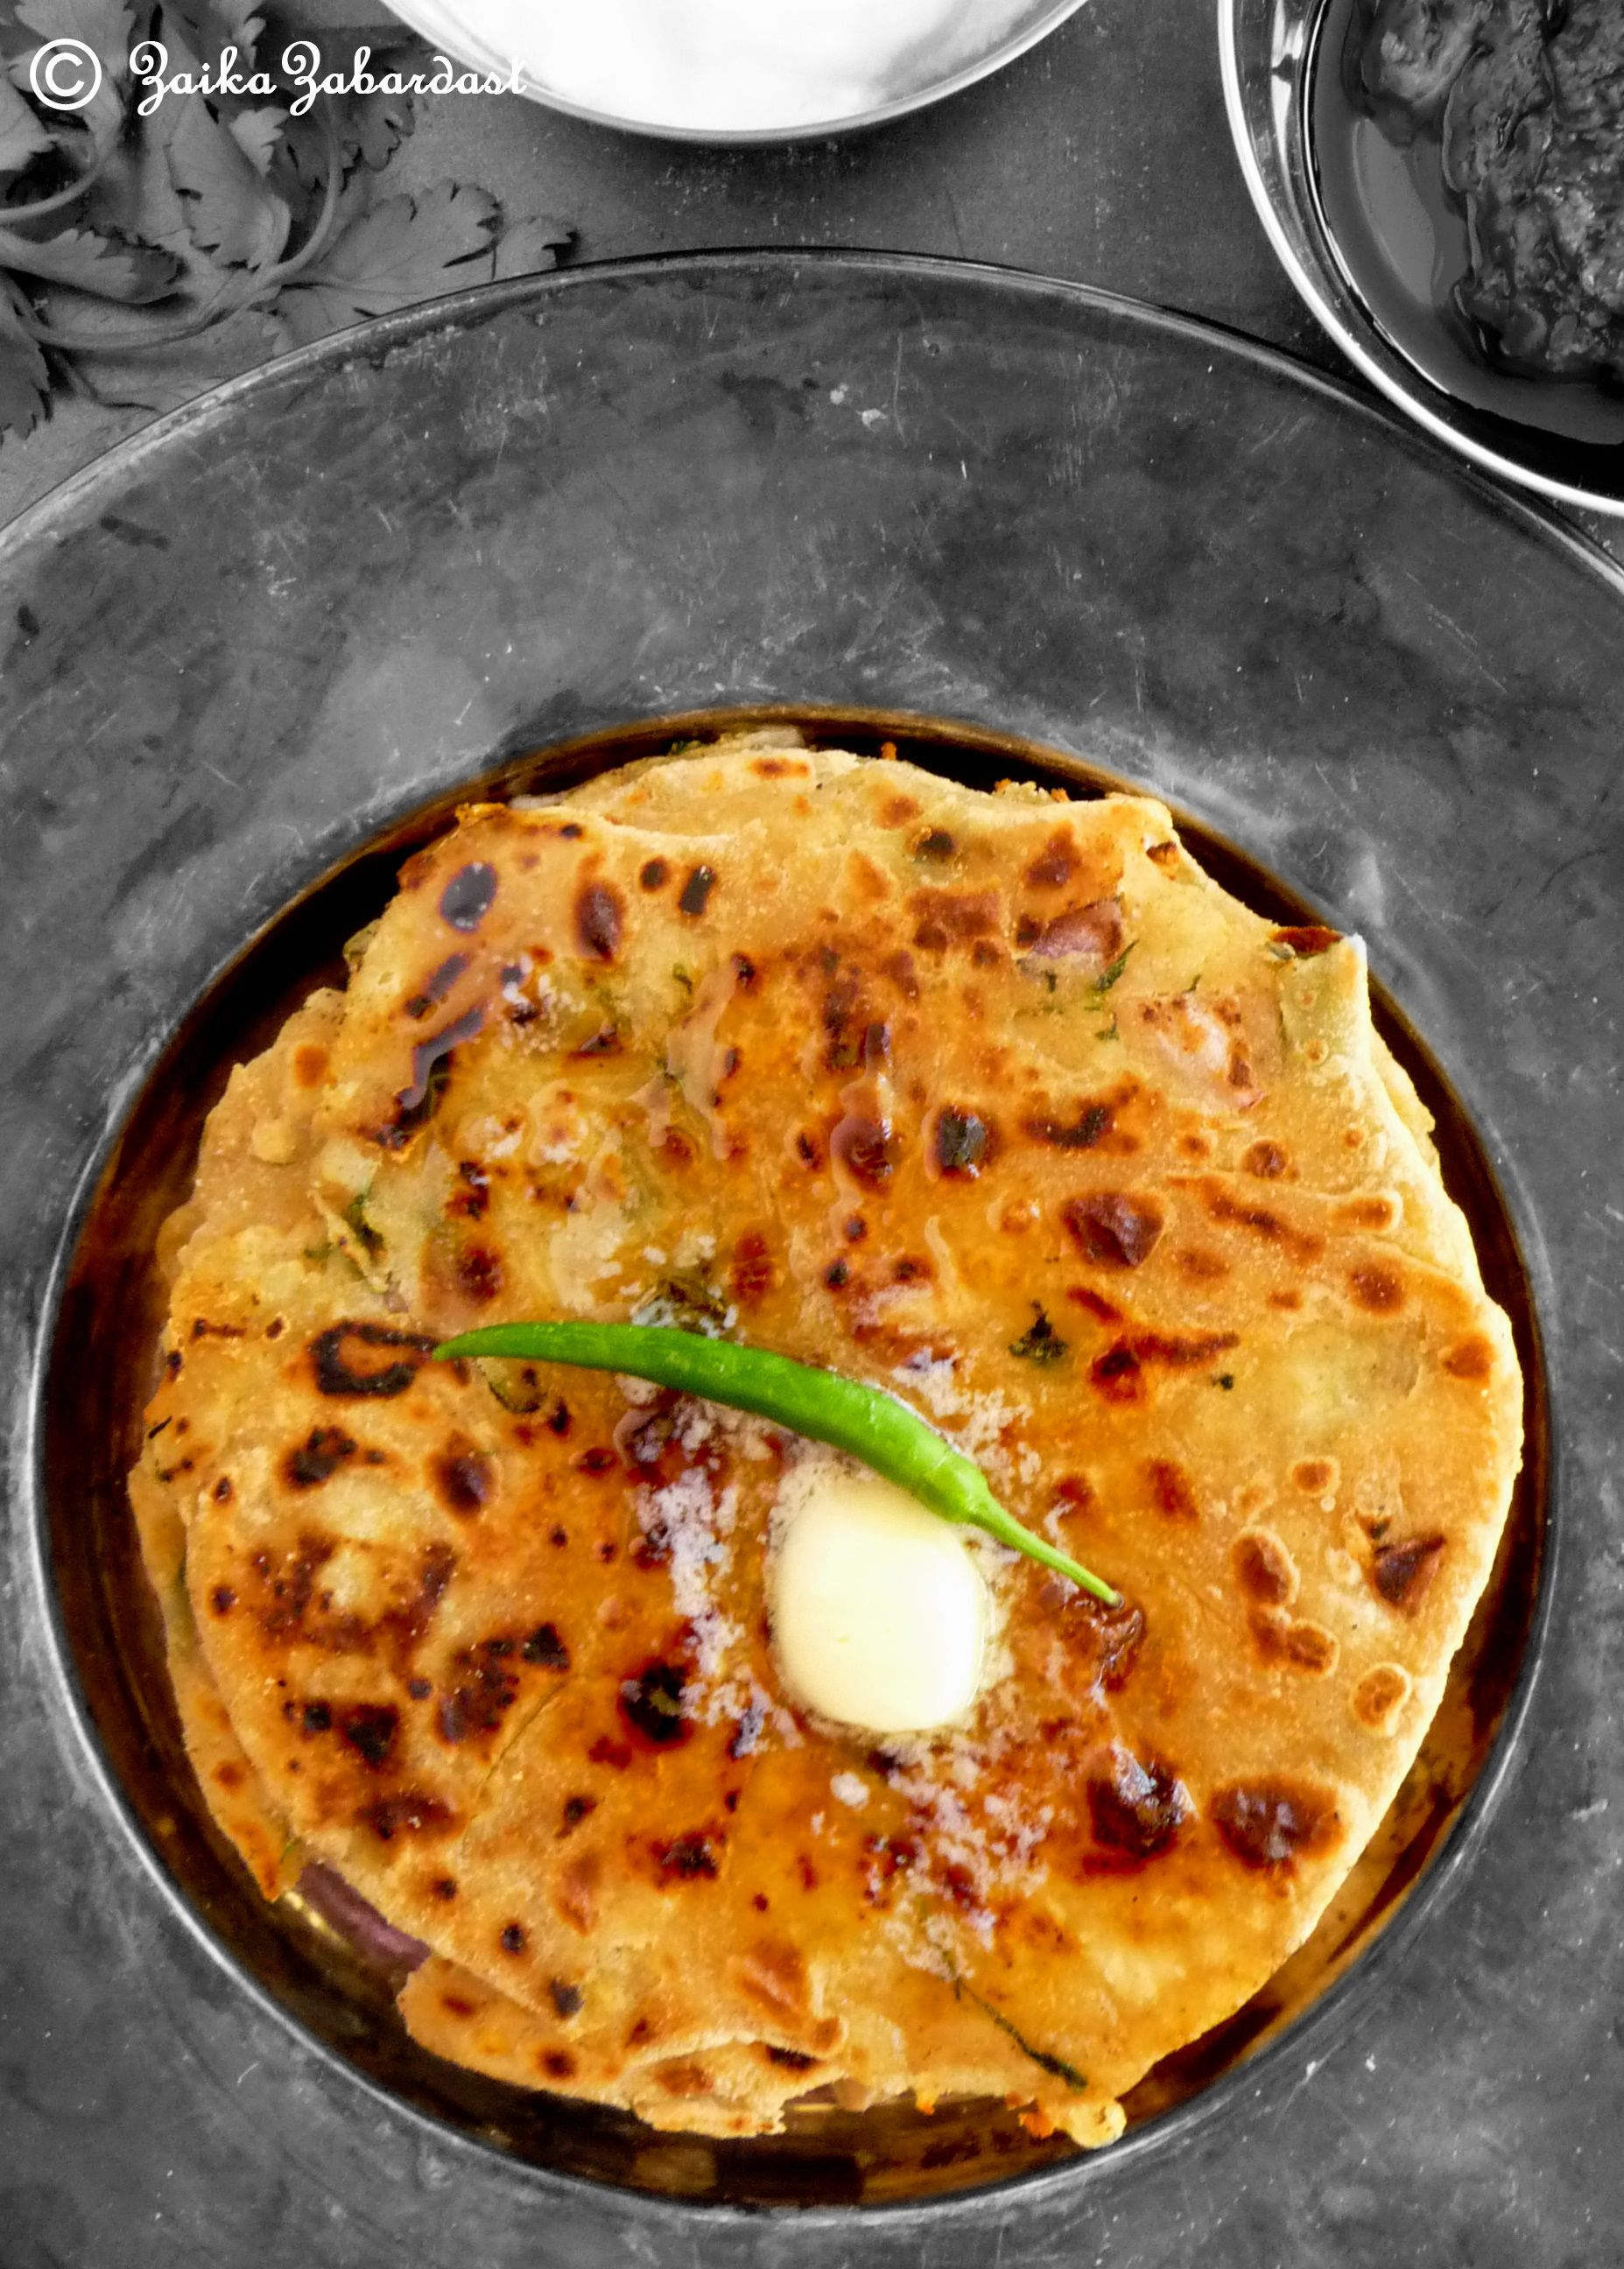 Fresh homemade potato stuffed indian flat bread aloo paratha fresh homemade potato stuffed indian flat bread aloo paratha stuffed parathaindian food recipesrecipes forumfinder Image collections